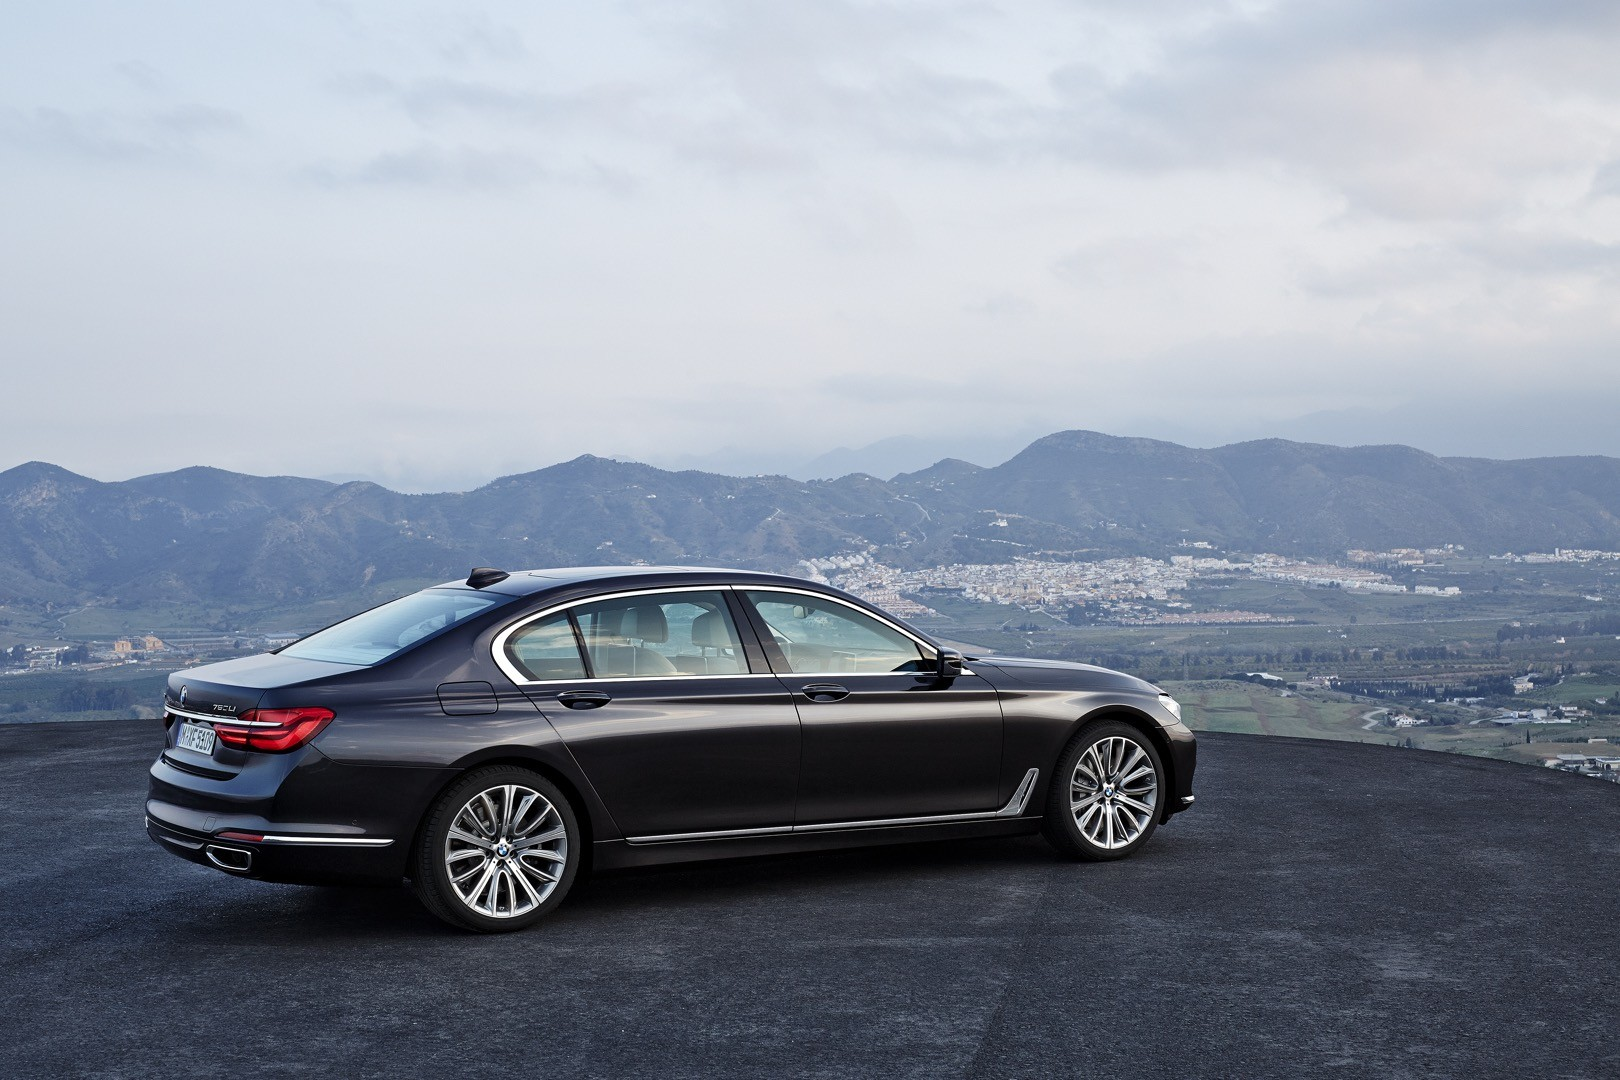 2016-bmw-7-series-finally-officially-unveiled-the-good-stuffs-inside-photo-gallery_16